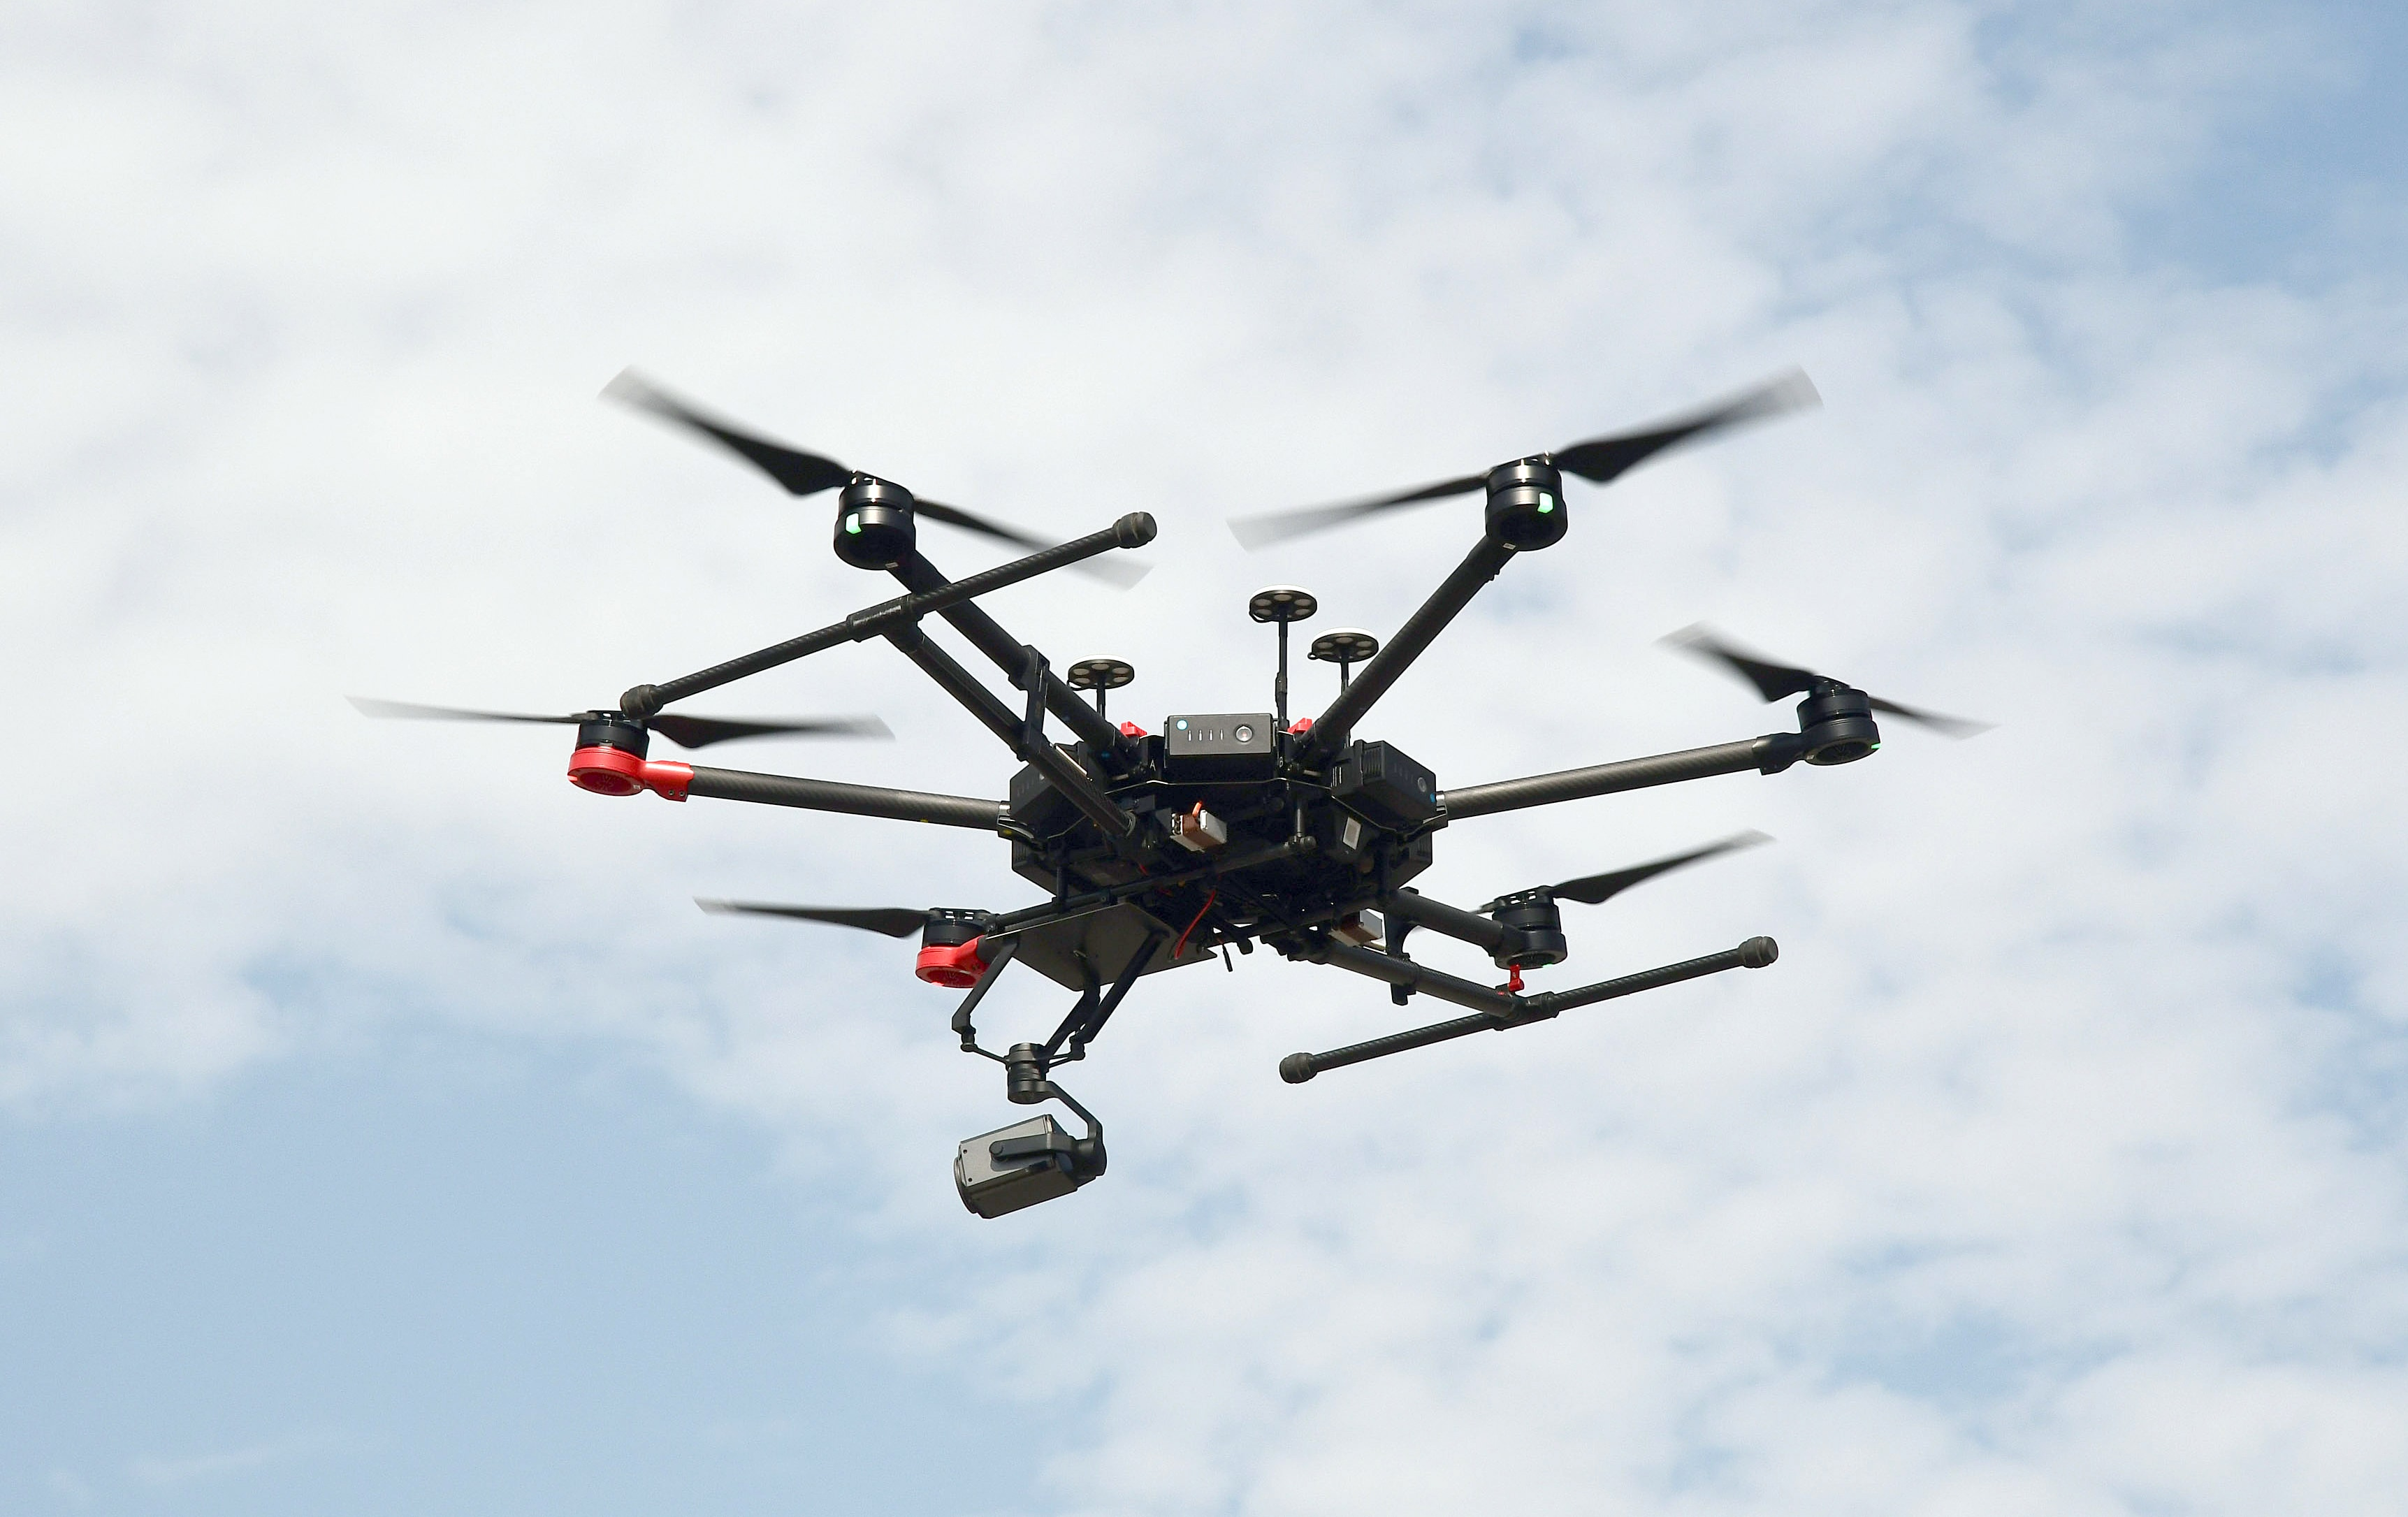 Special Operation Group using the drones to monitor the situation during a curfew imposed by the administration, in Srinagar on Tuesday.